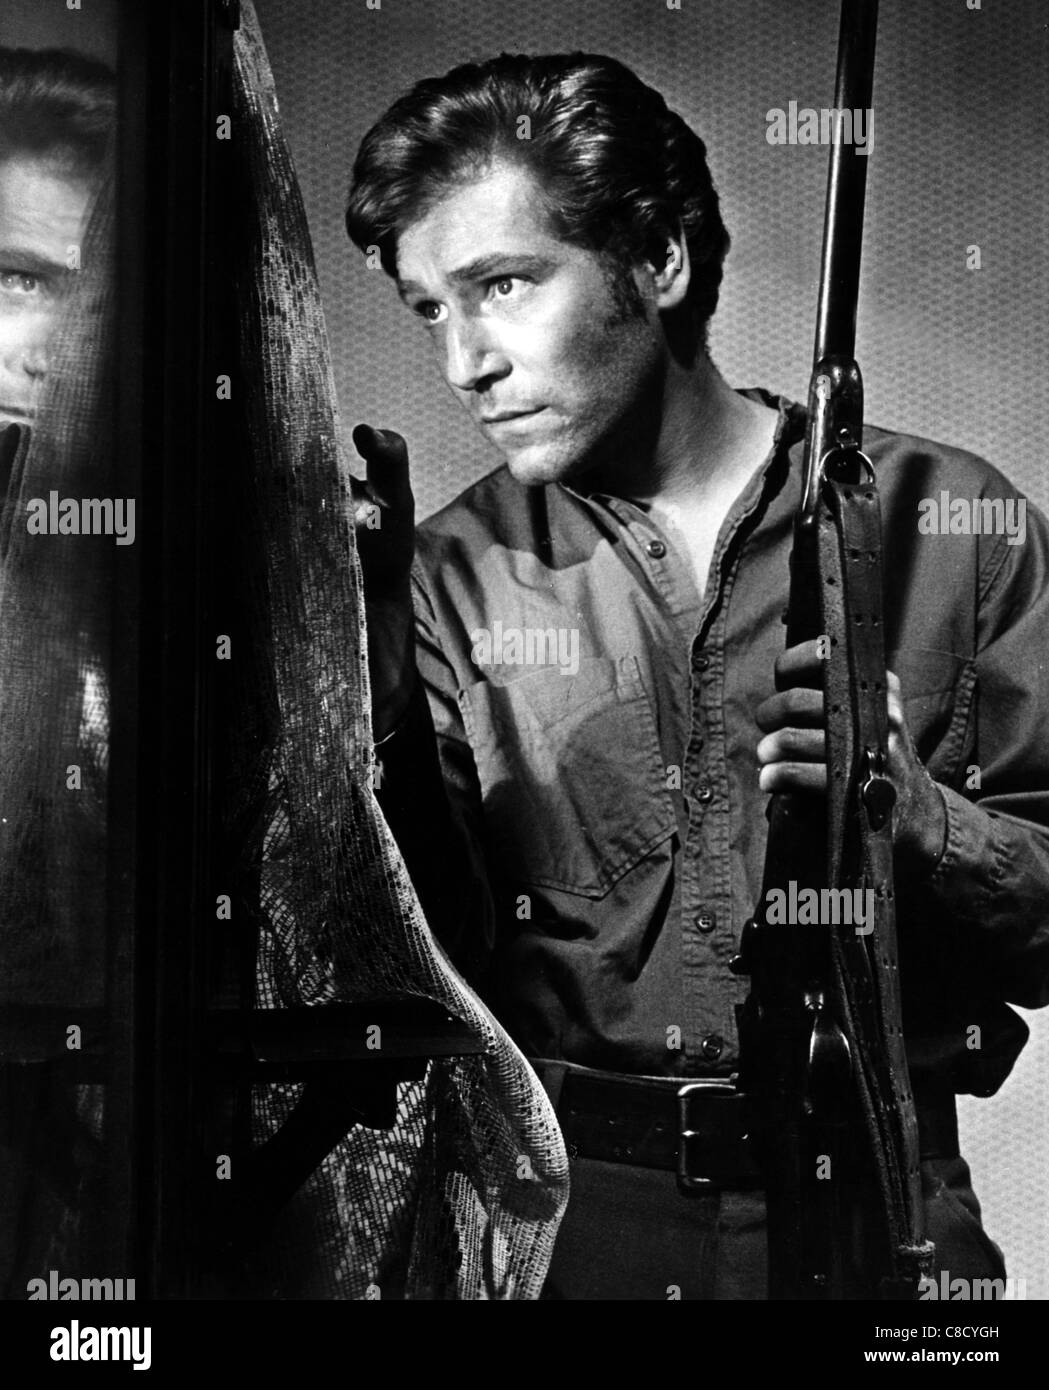 George segal invitation to a gunfighter 1964 stock photo 39623041 george segal invitation to a gunfighter 1964 stopboris Image collections